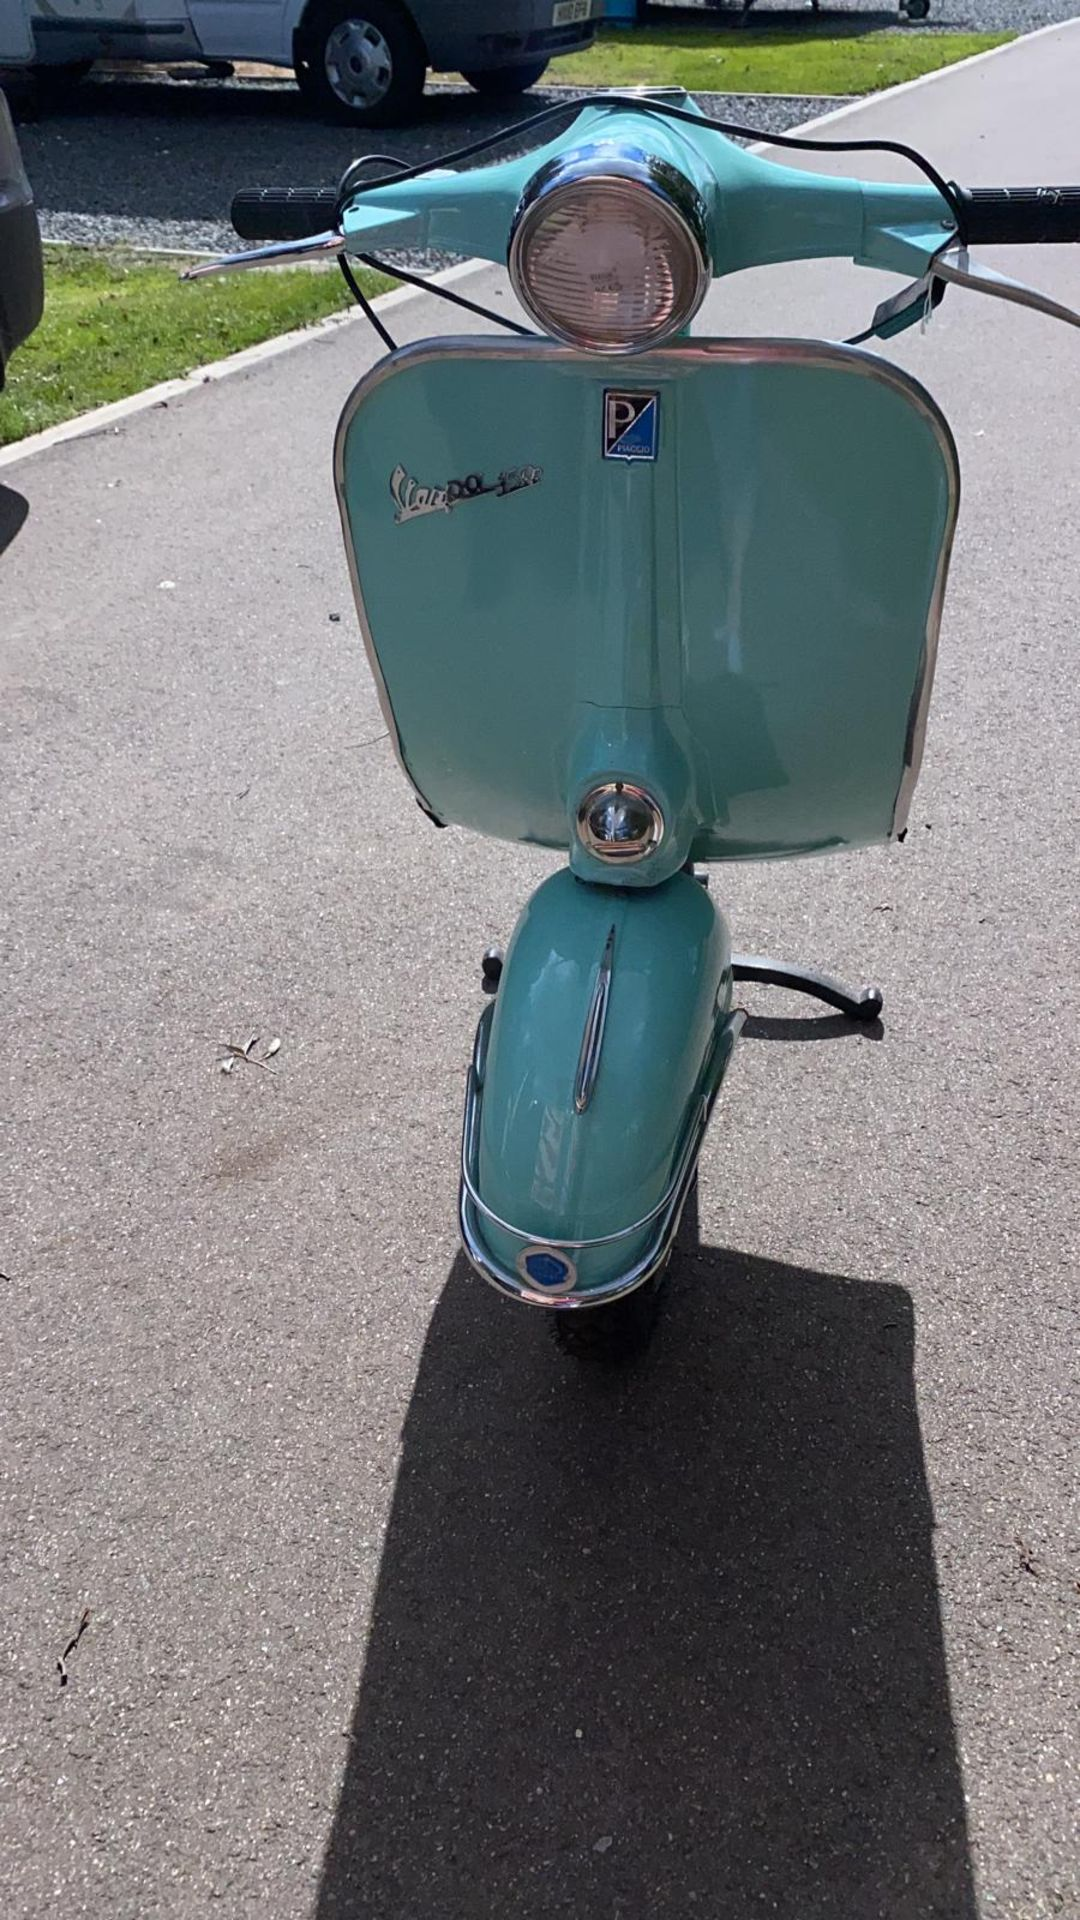 PIAGGIO VESPA 150 FRONT LIGHT ON A 3 PIN PLUG THROUGH THE HEADLIGHT *NO VAT* - Image 8 of 8